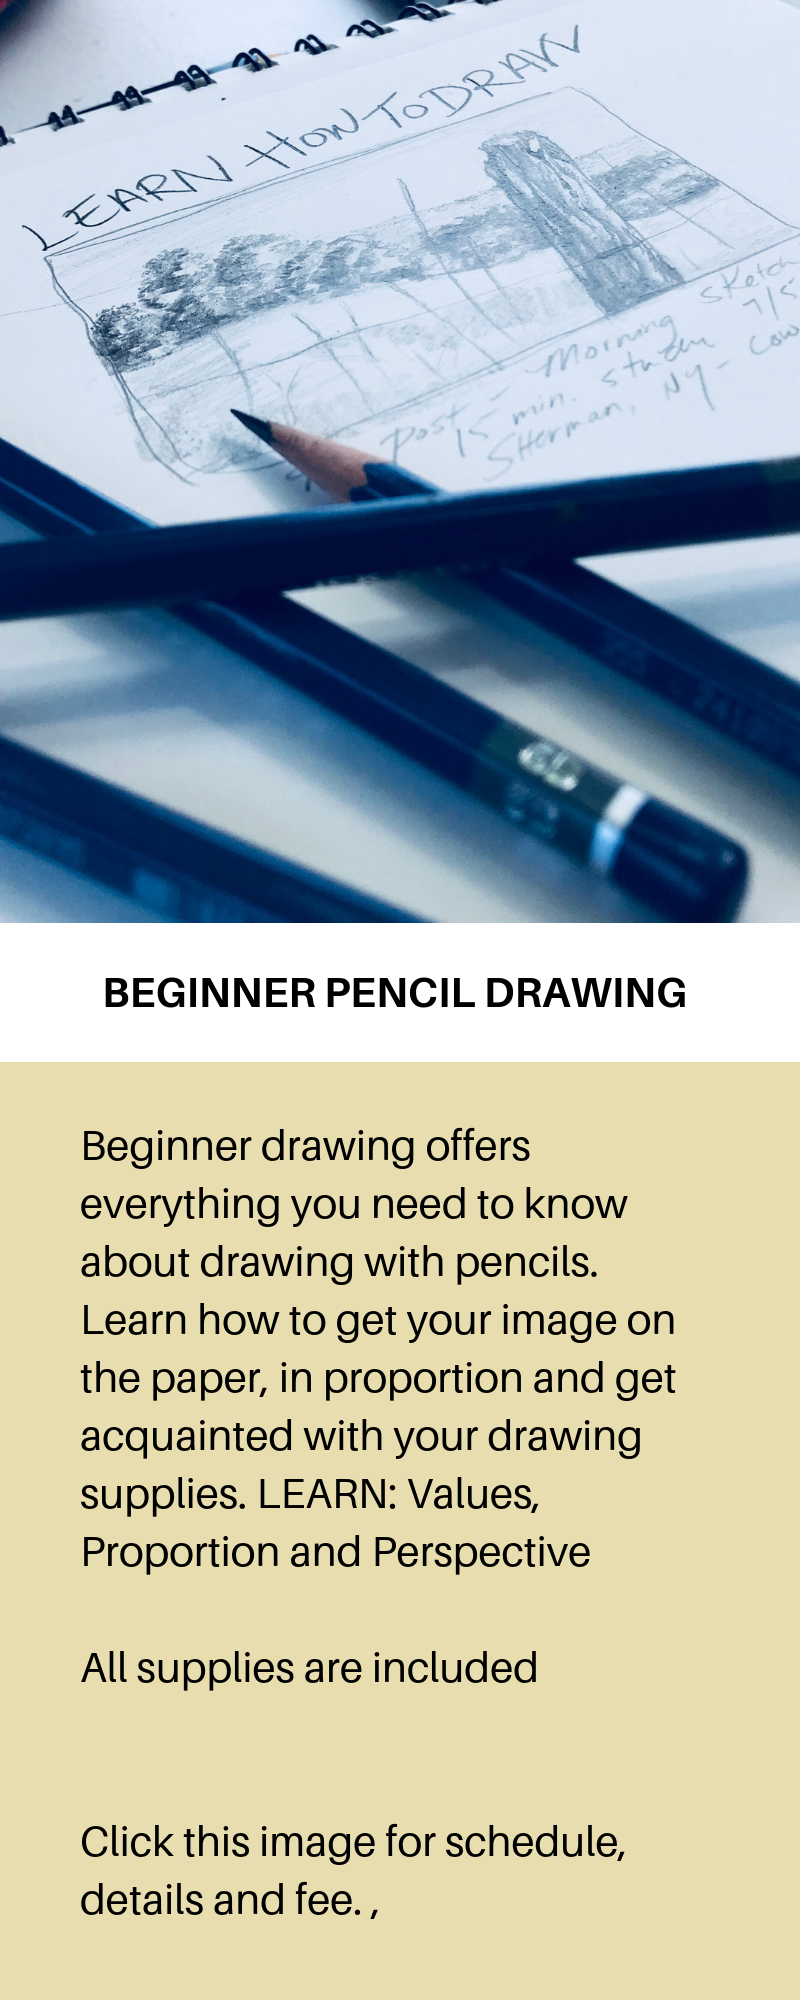 STARTING SPRING 2019 - LEARN HOW TO DRAW FROM HOME ! LIVE CLASS ON FB